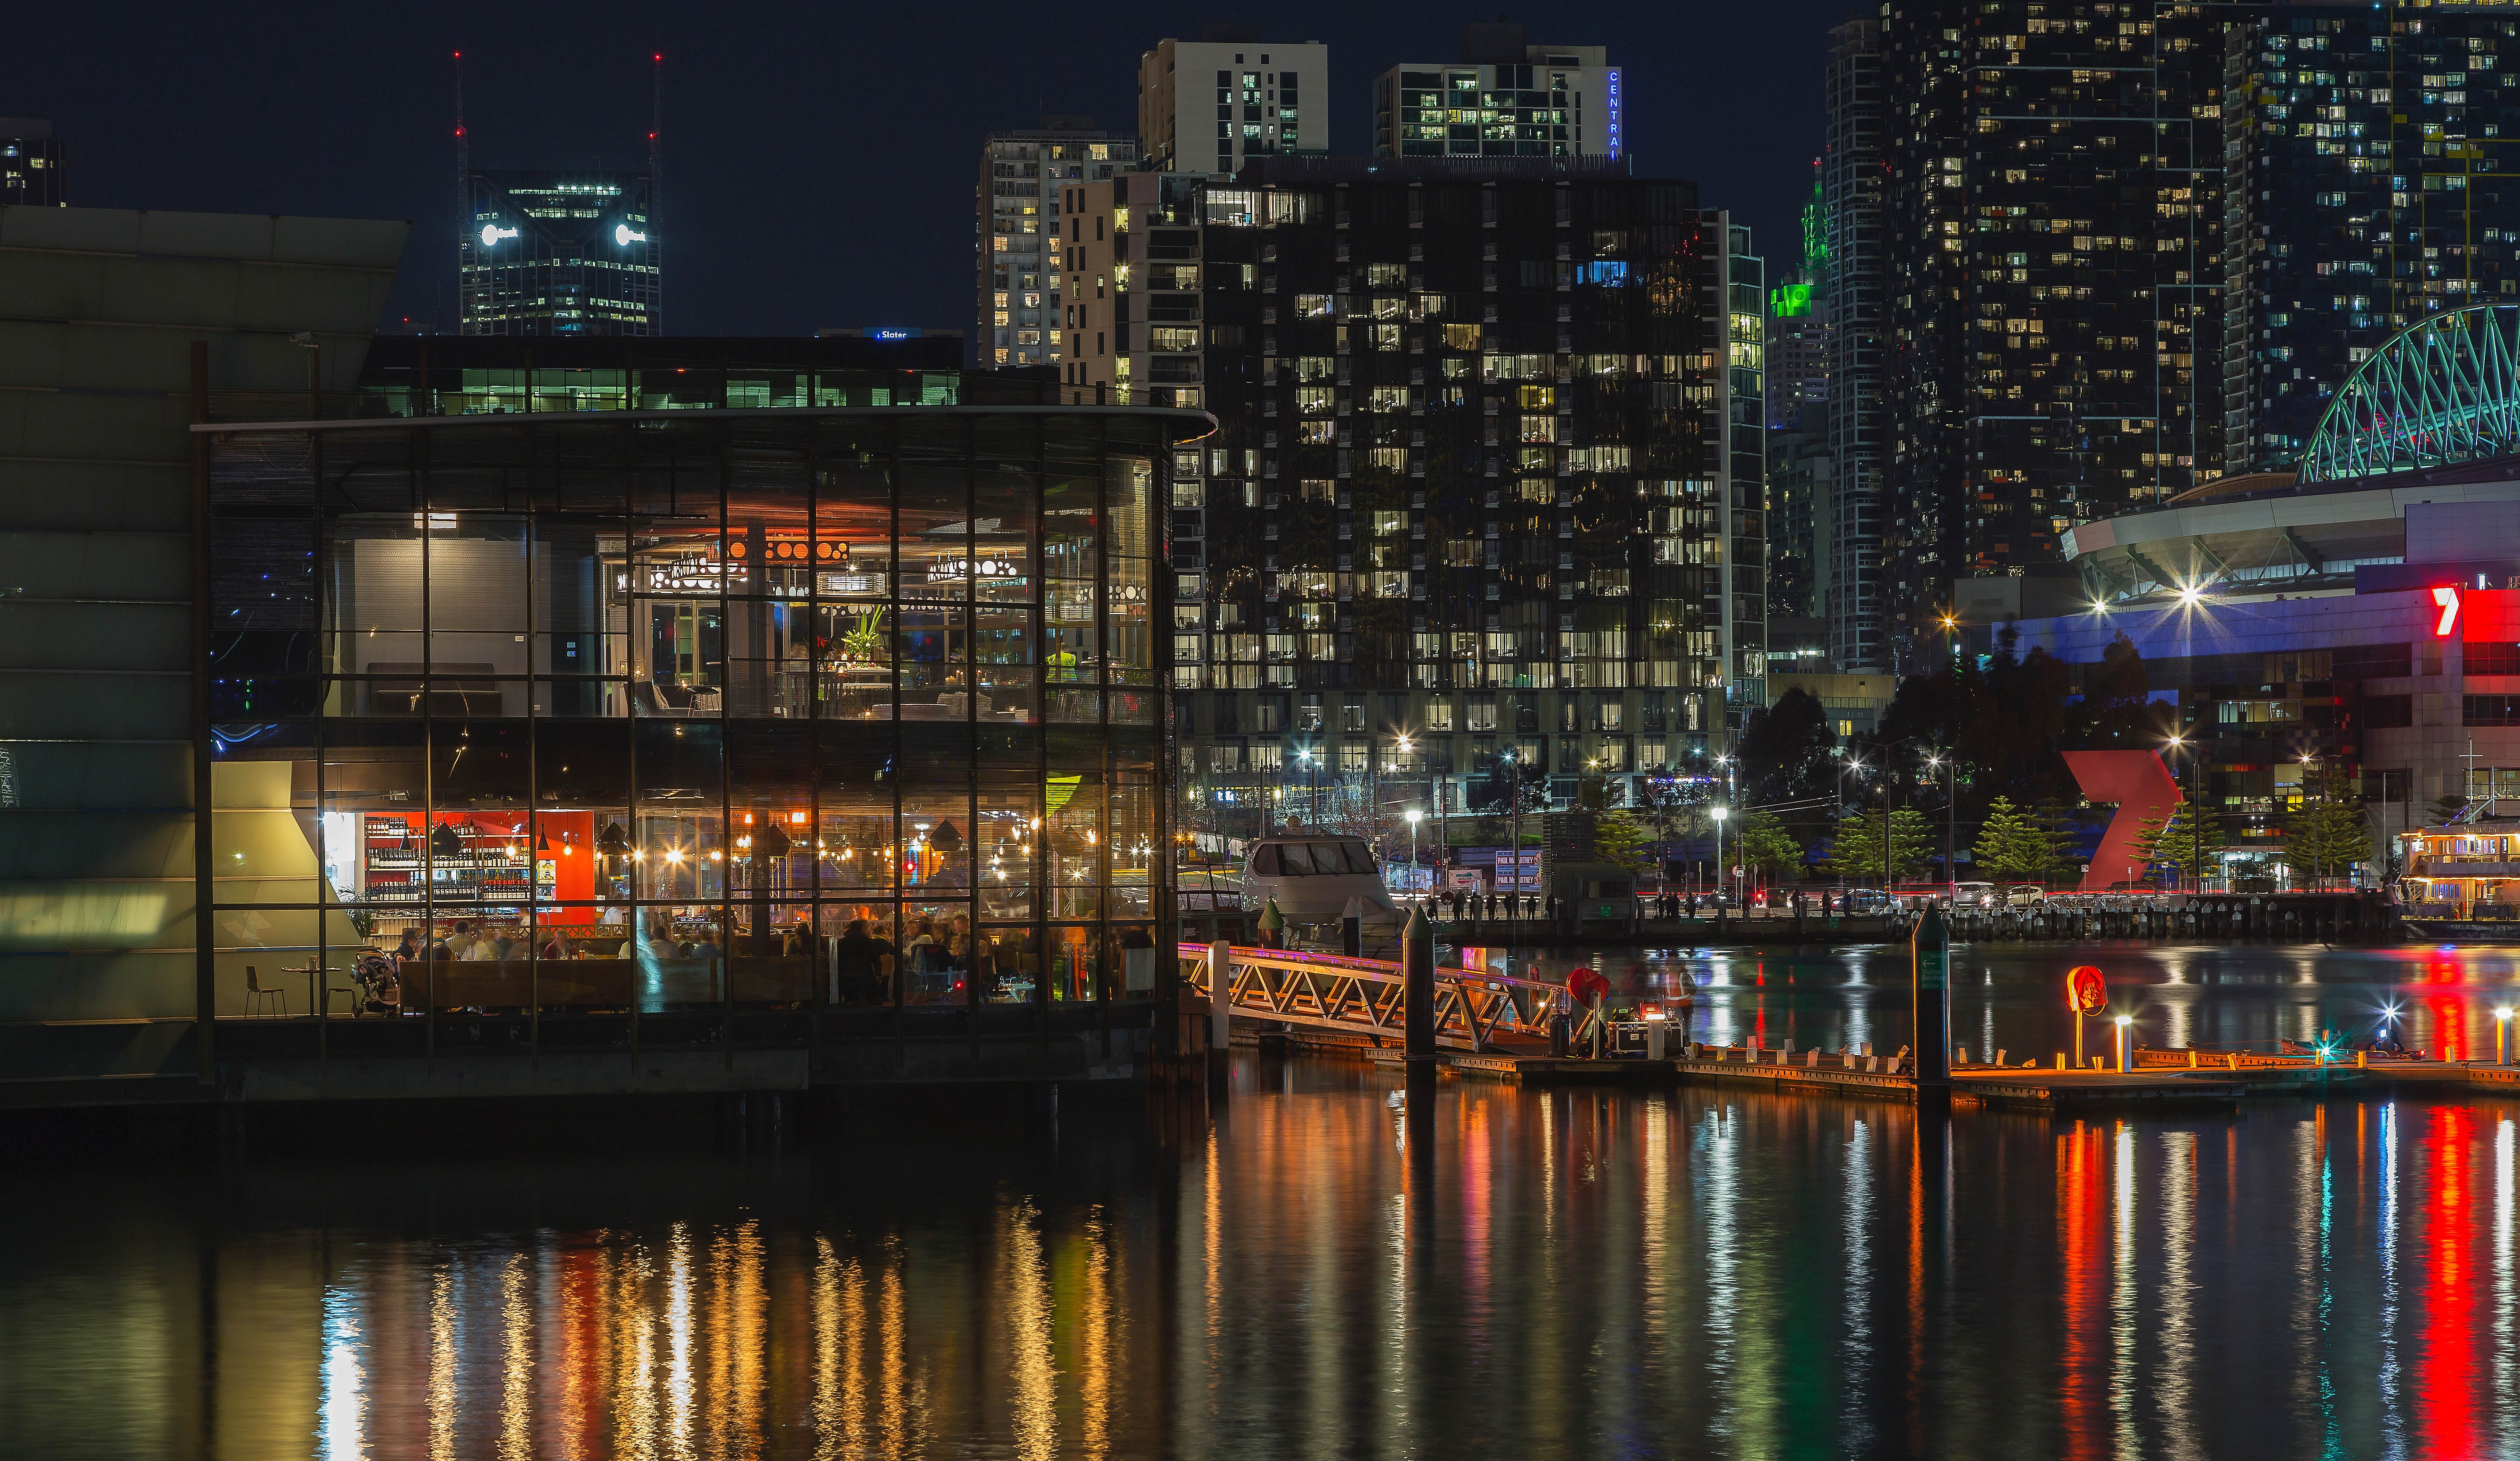 Building on Waters, Architecture, Water, Urban, Skyscrapers, HQ Photo